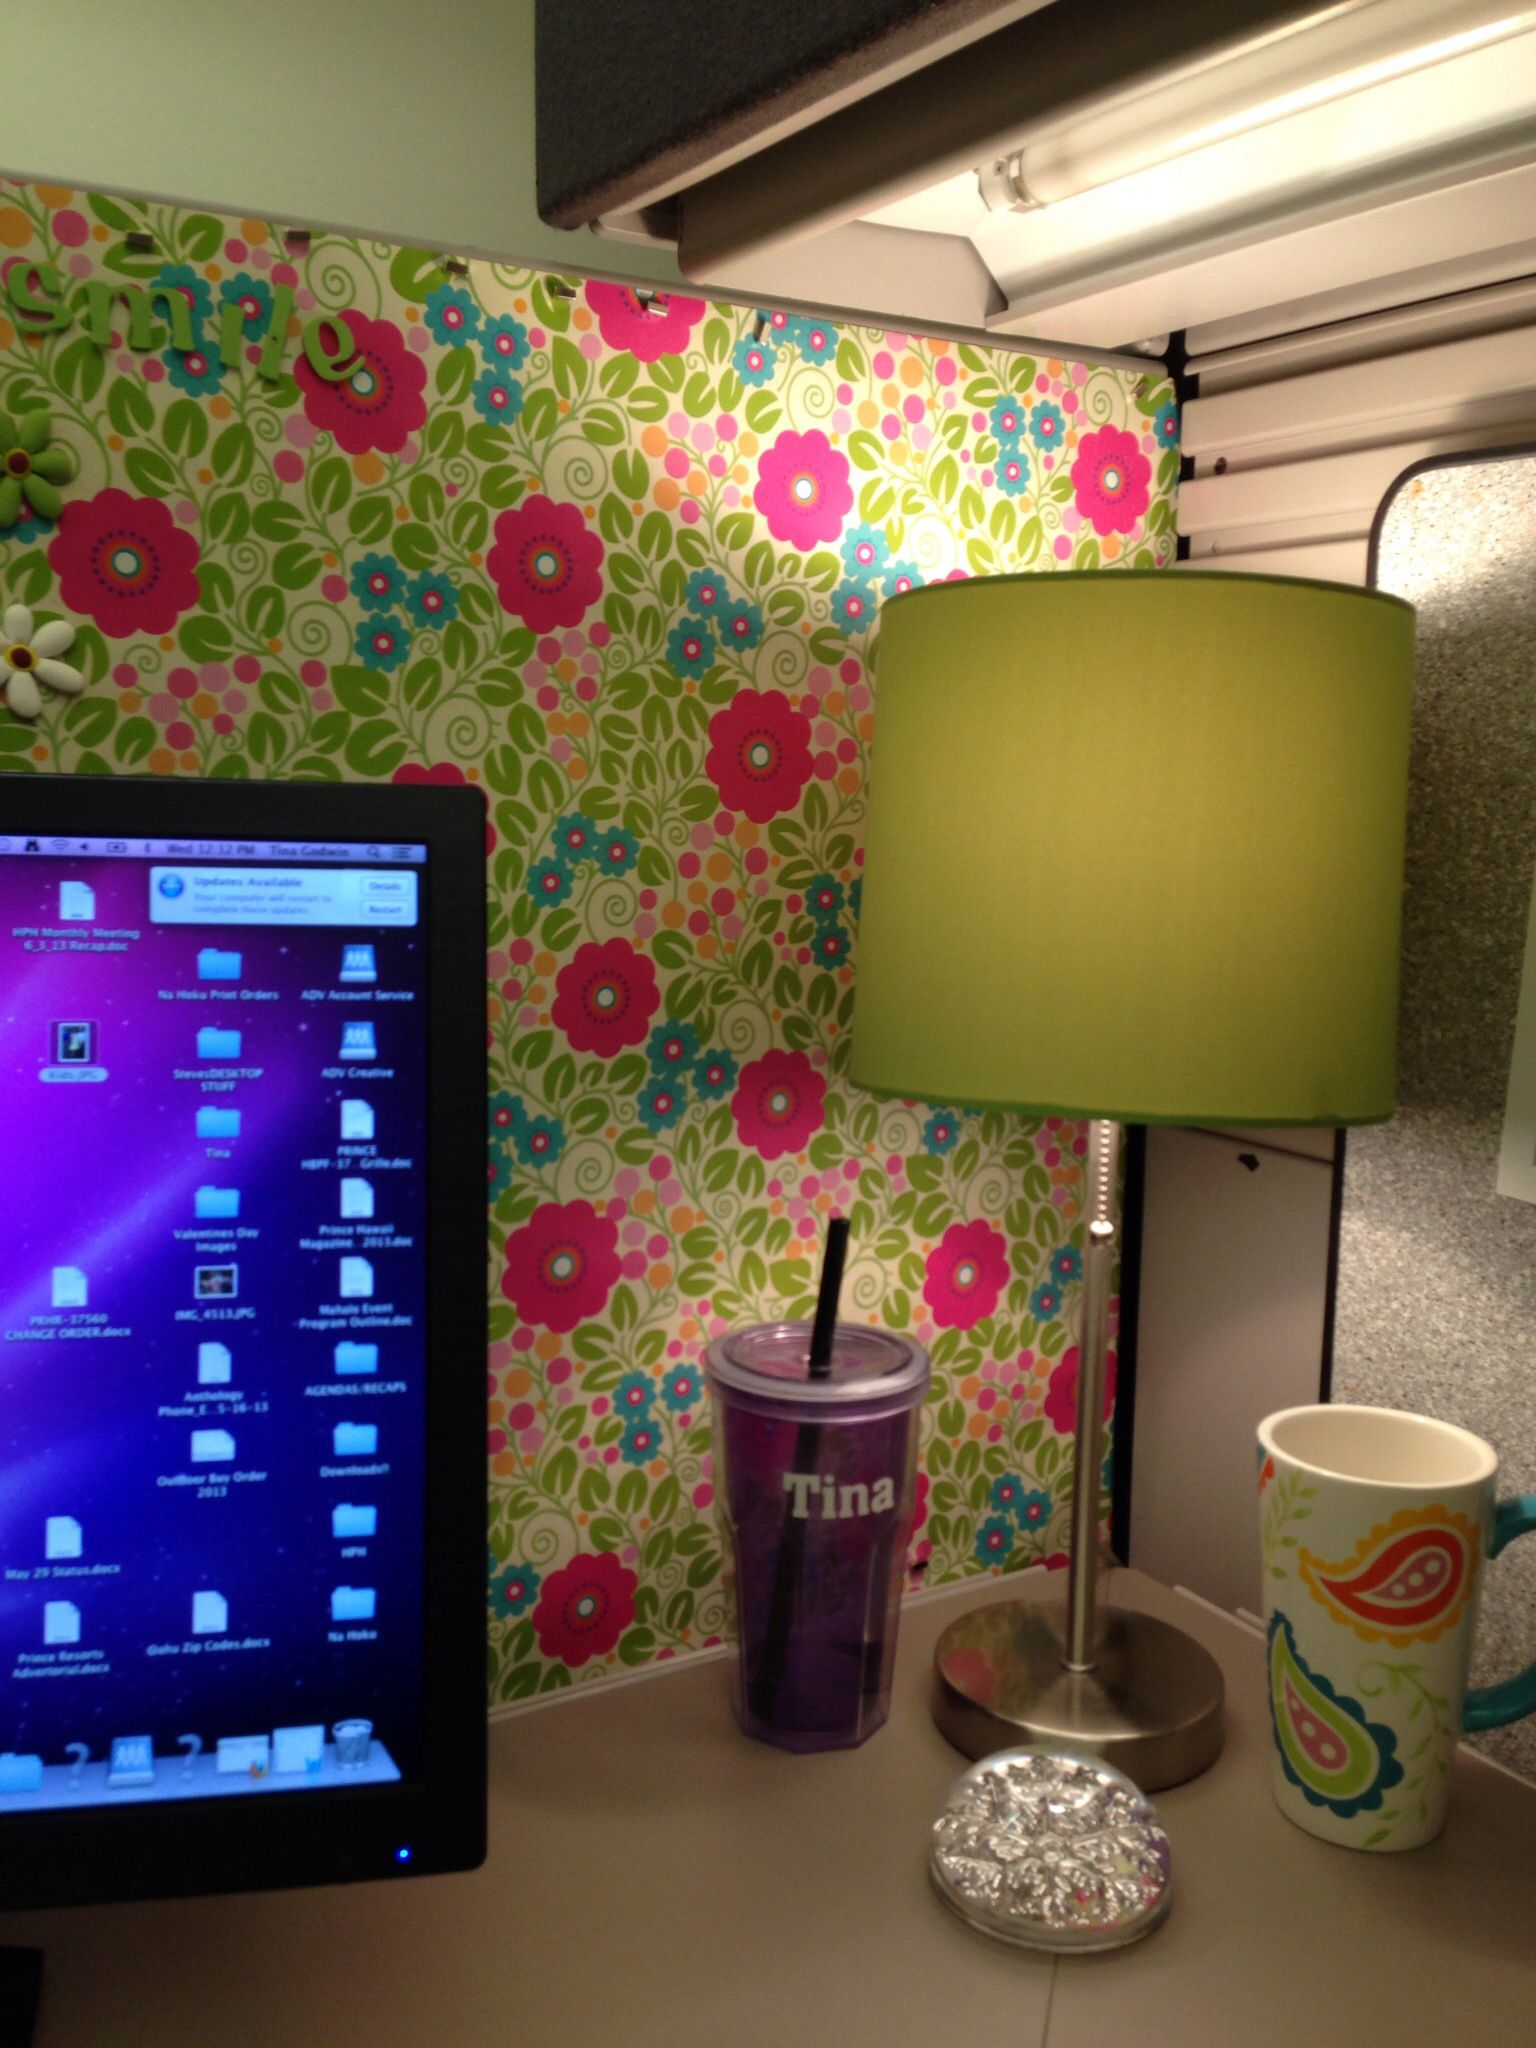 Cute lamp in the corner matches my wrapping paper ...